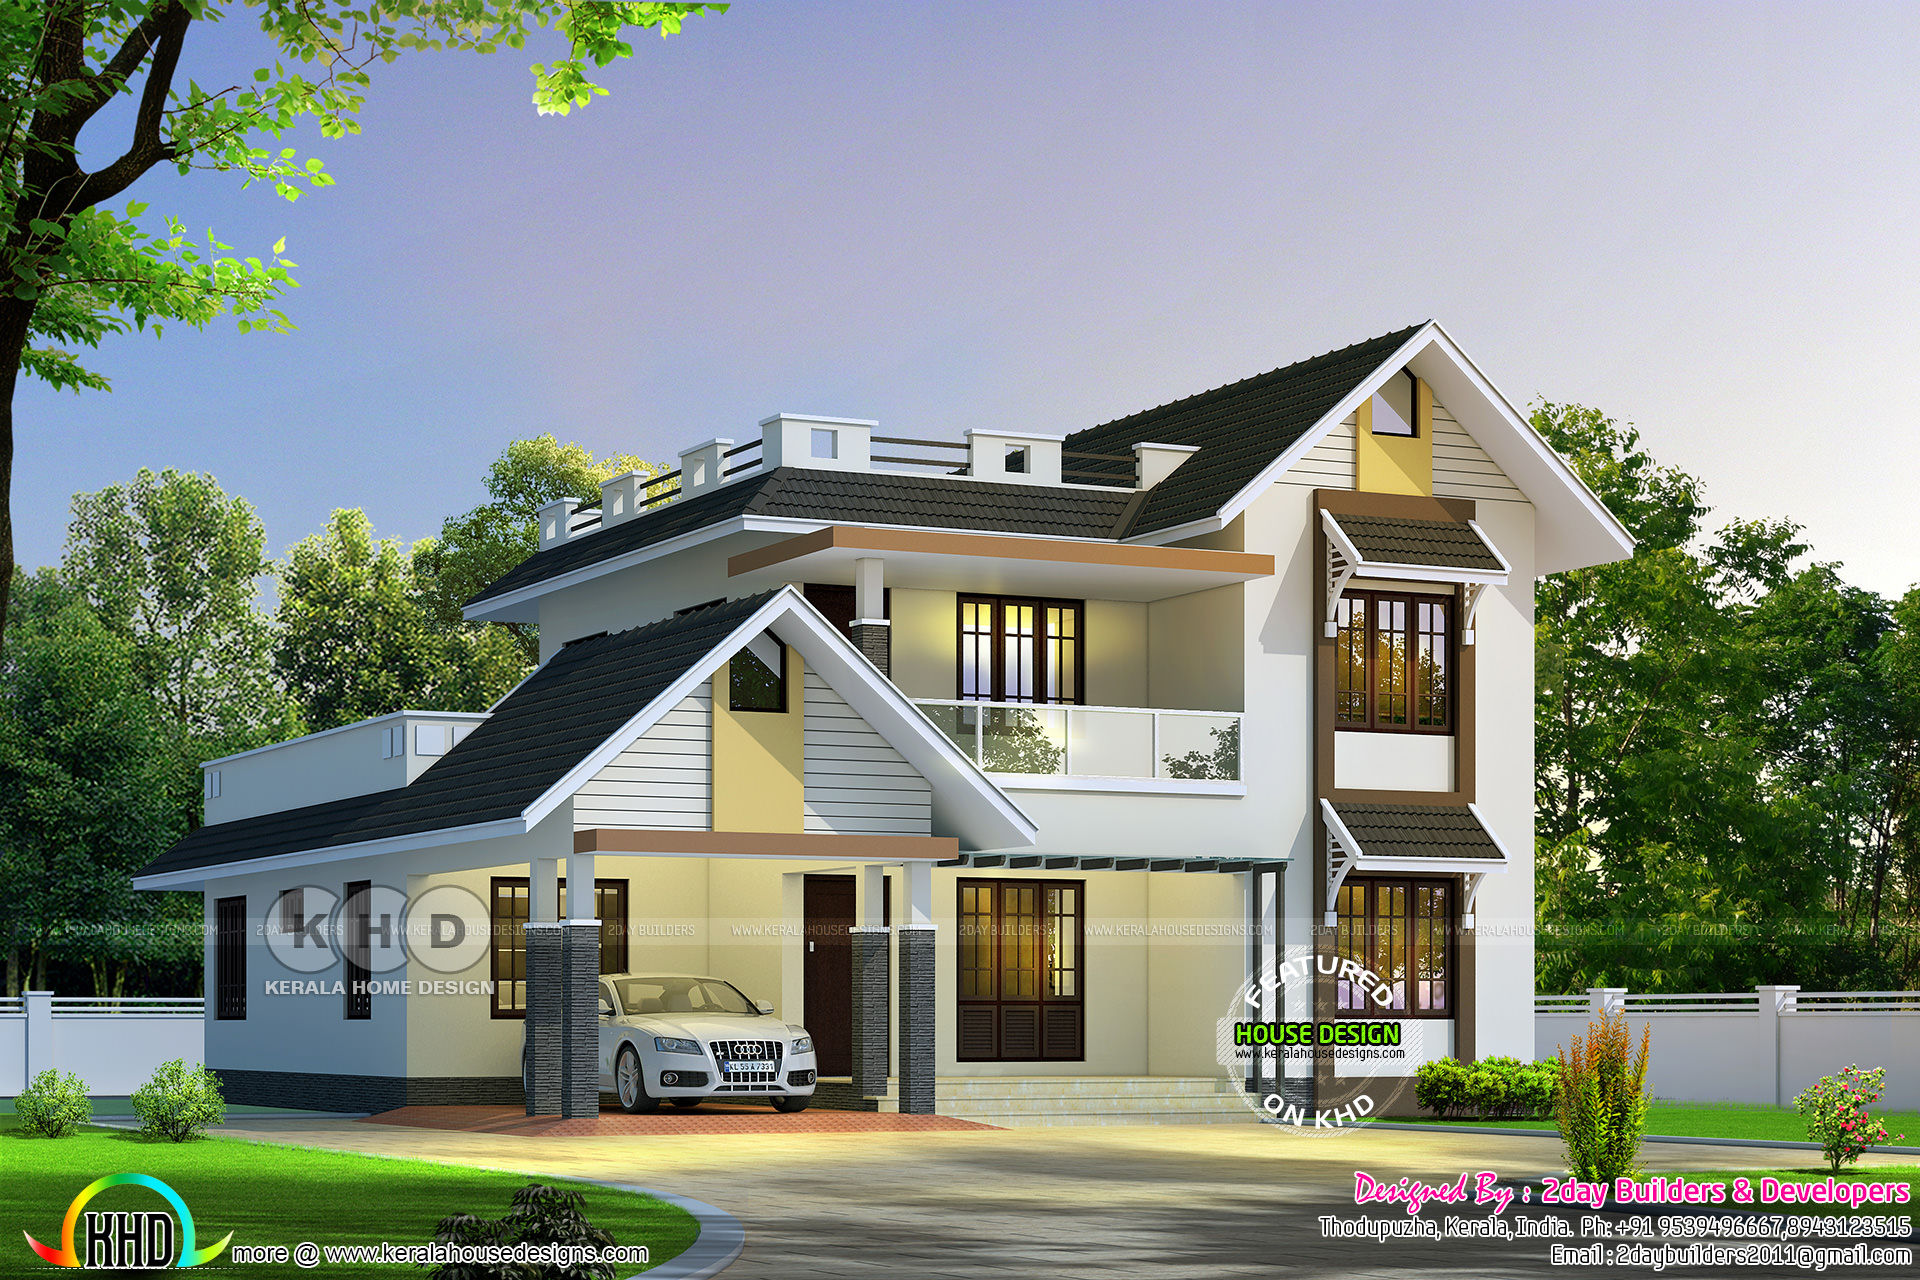 simple-beautiful-kerala-home-design.jpg